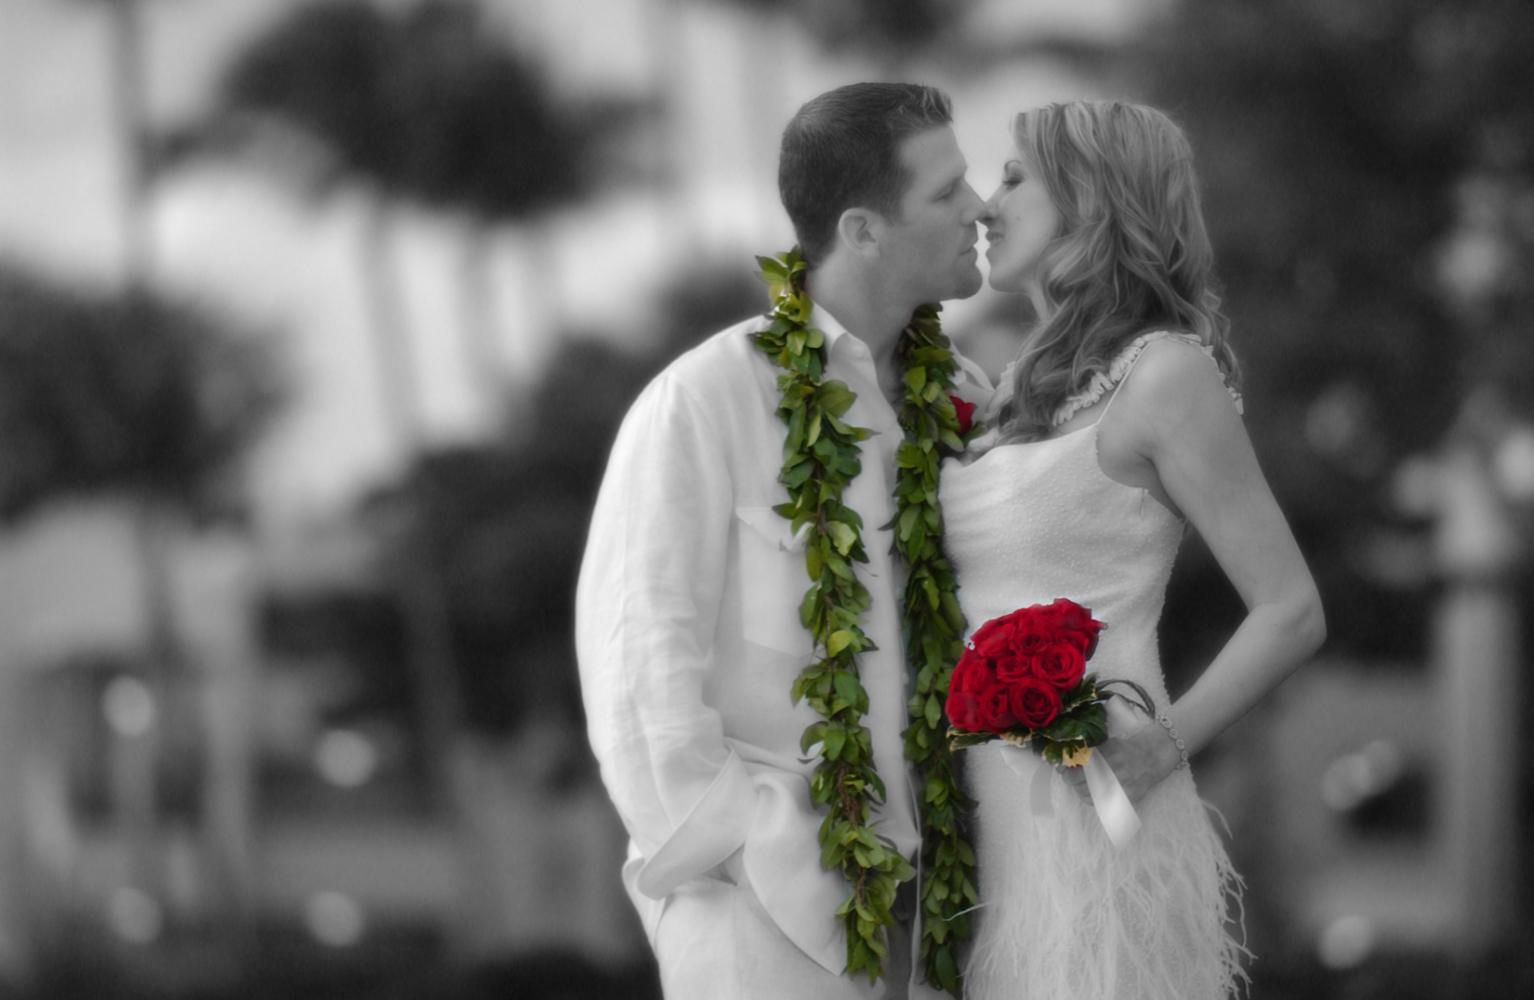 Maui Hawaii Beach Wedding Photographer, マウイカメラマン、写真家、Maui Photography, Grand Wailea